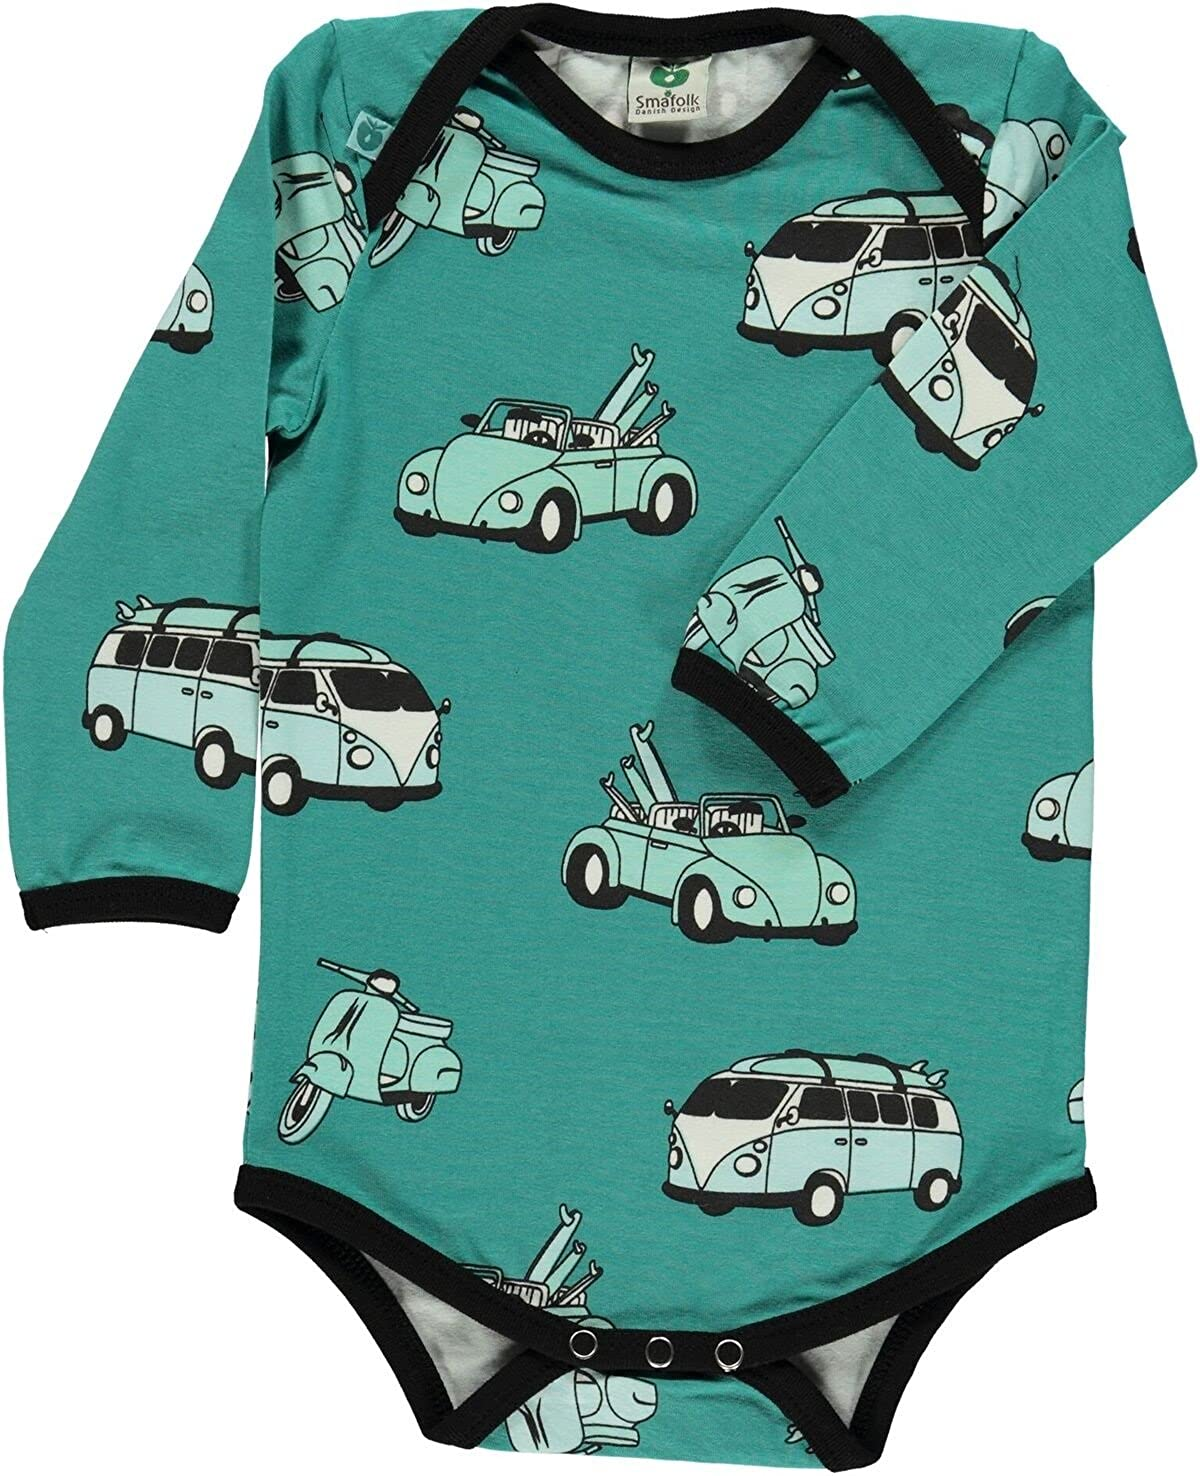 Smafolk Long Sleeved Cars Body - Agate Green